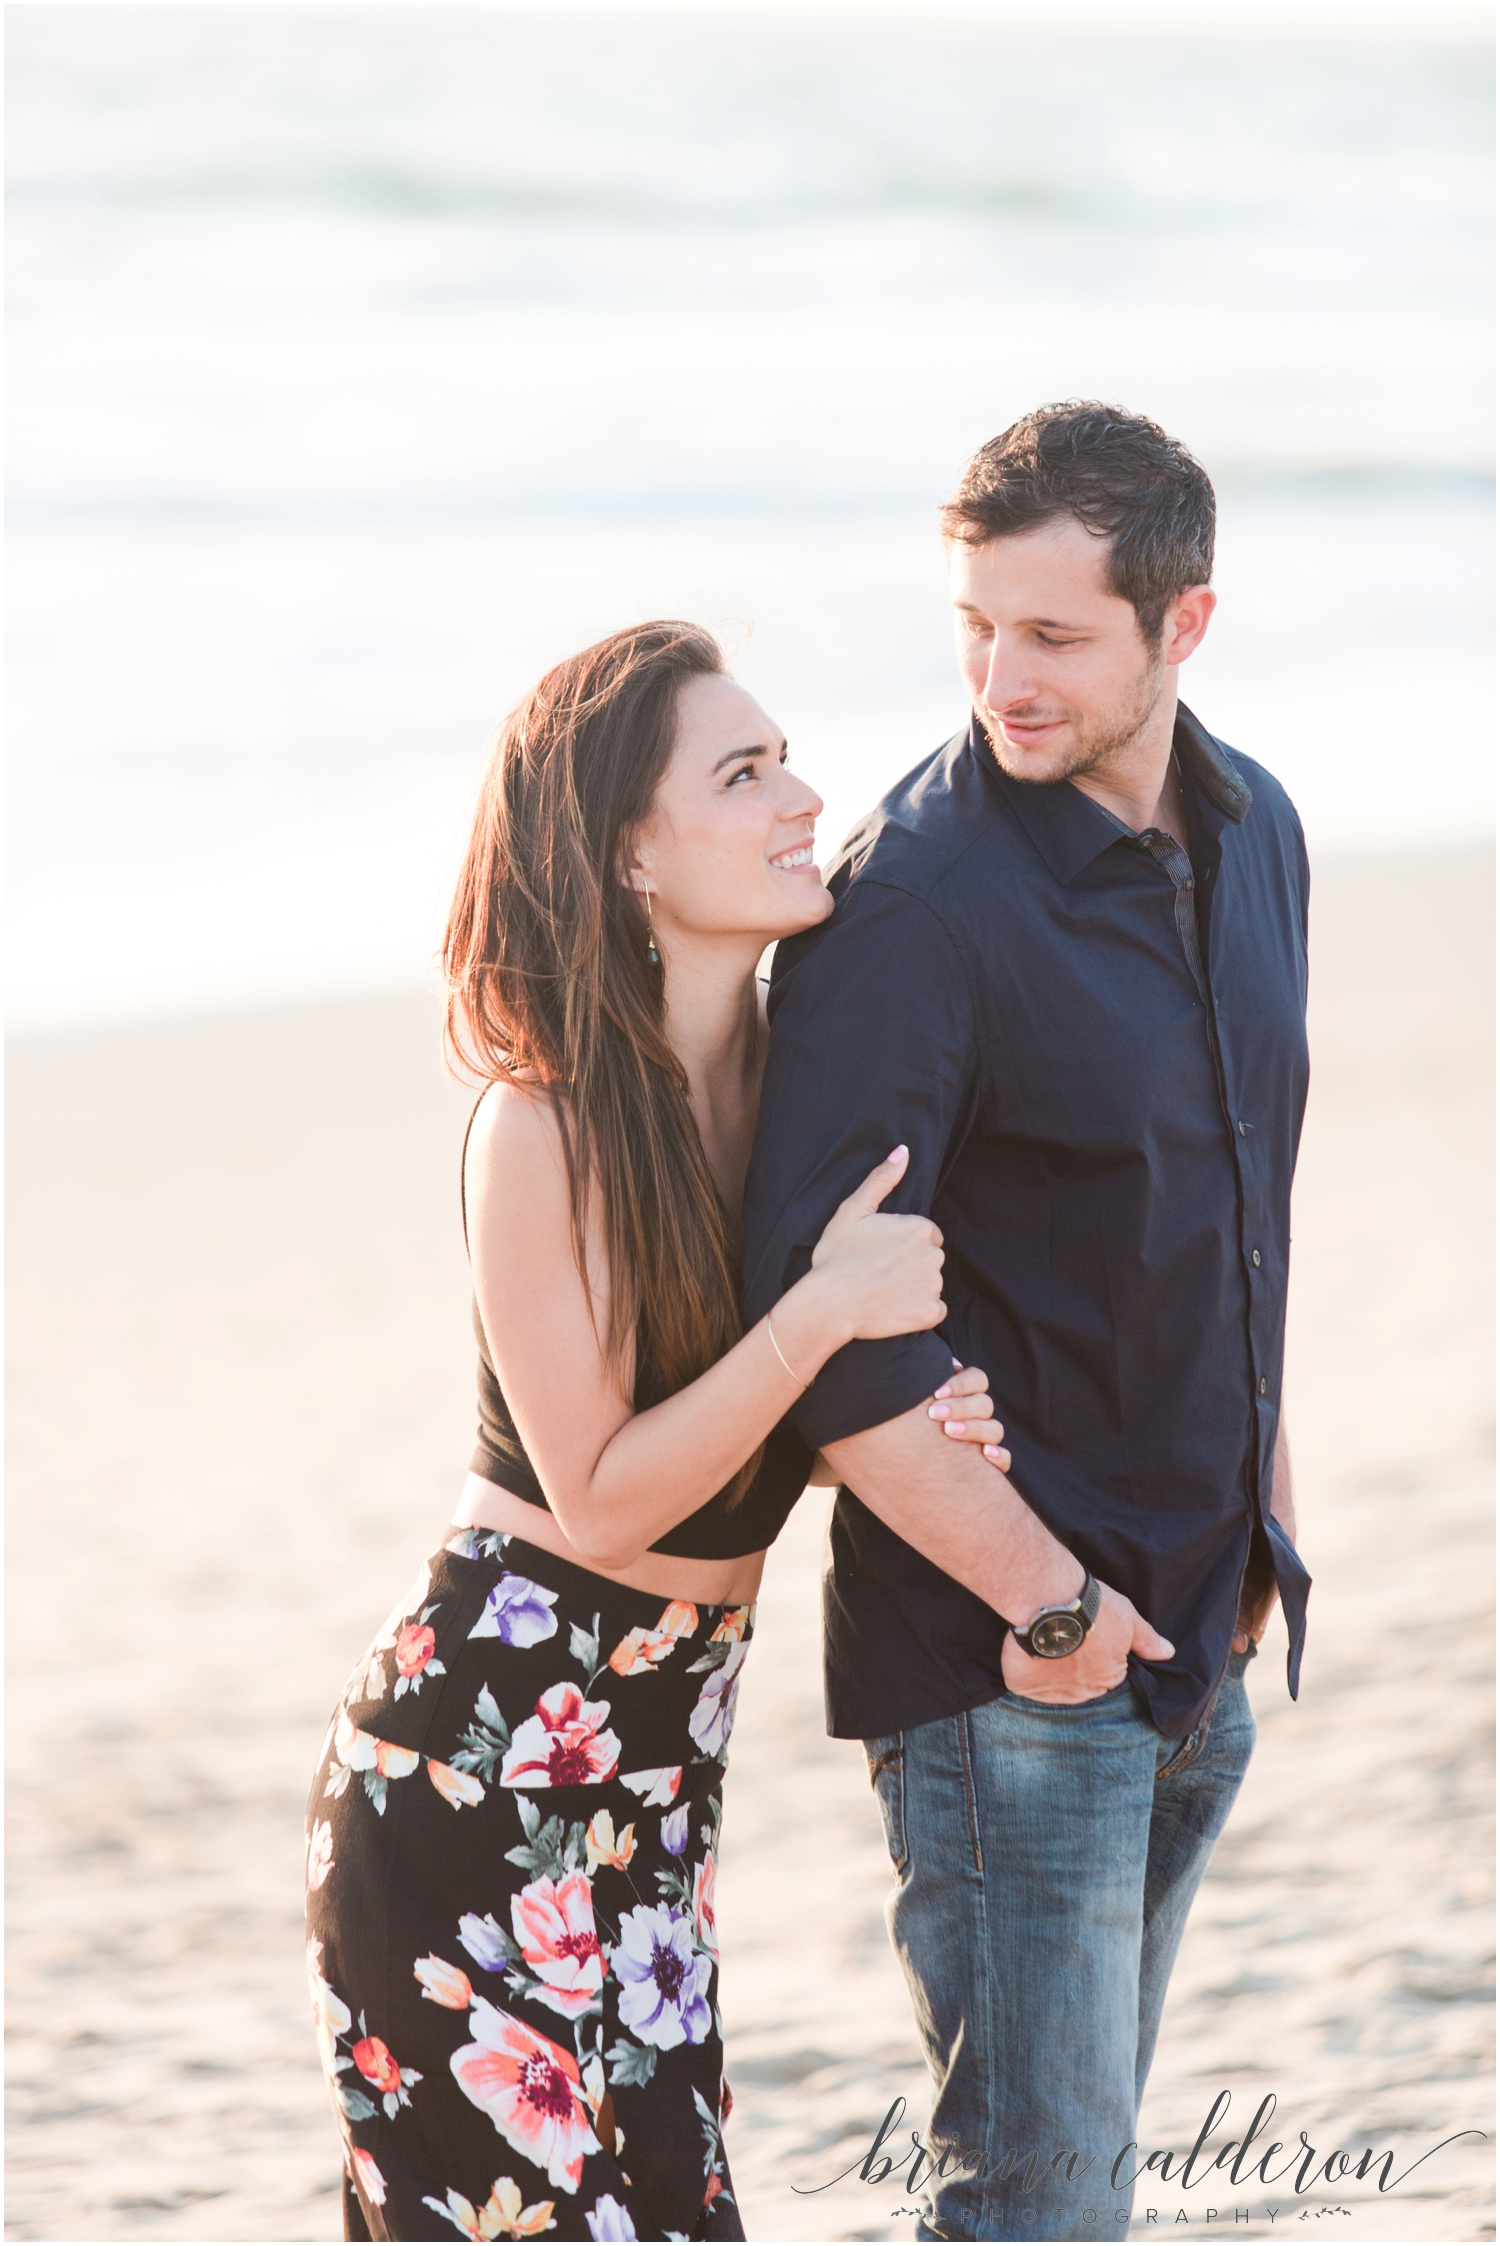 LA Beach Engagement Photos by Briana Calderon Photography_0822.jpg